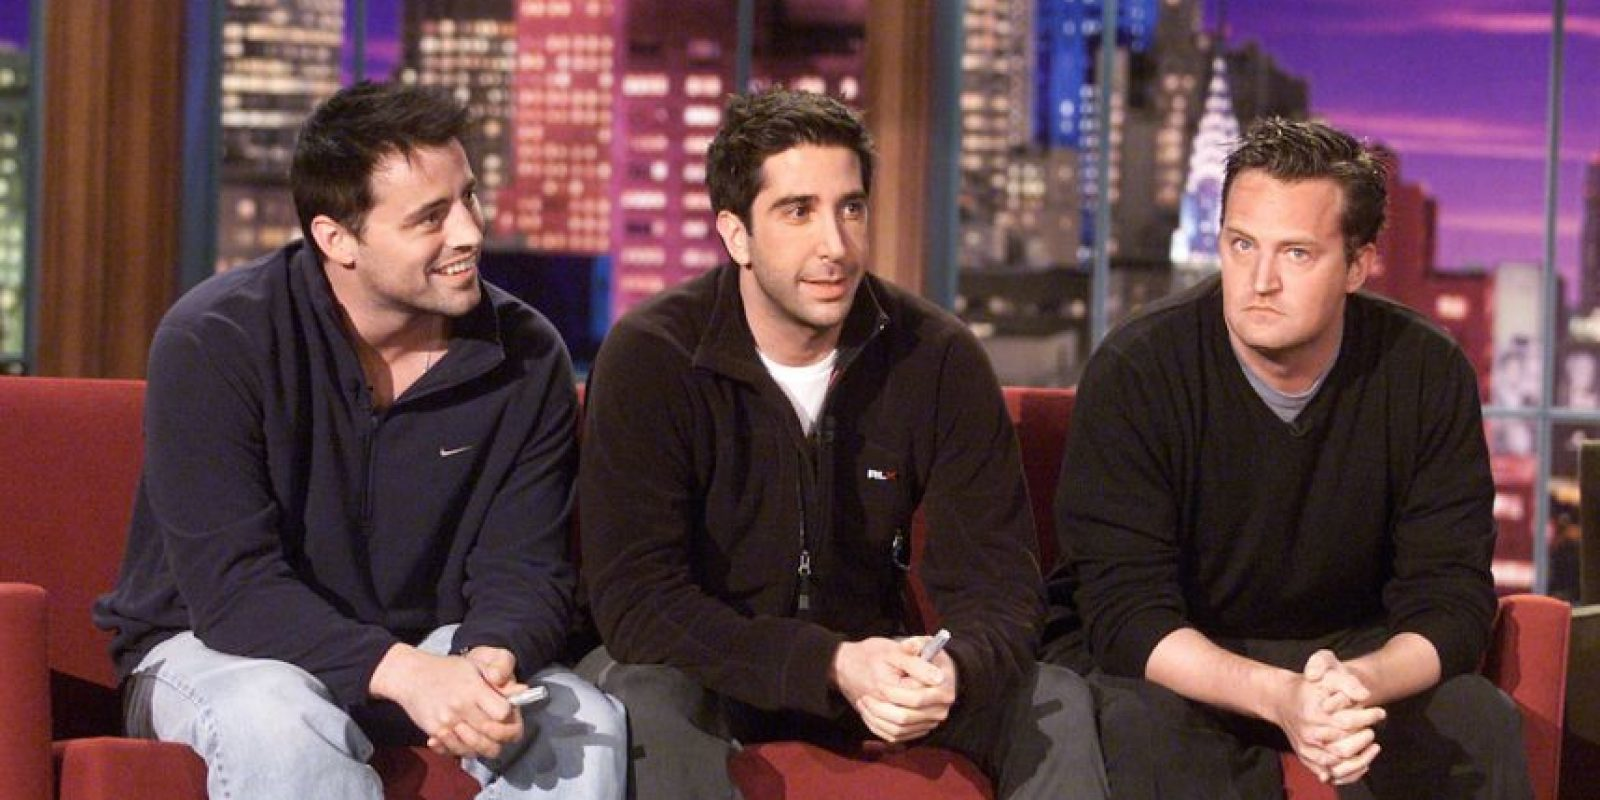 Matt LeBlanc (Joey), Matthew Perry (Chandler) y David Schwimmer (Ross). Foto: Getty Images